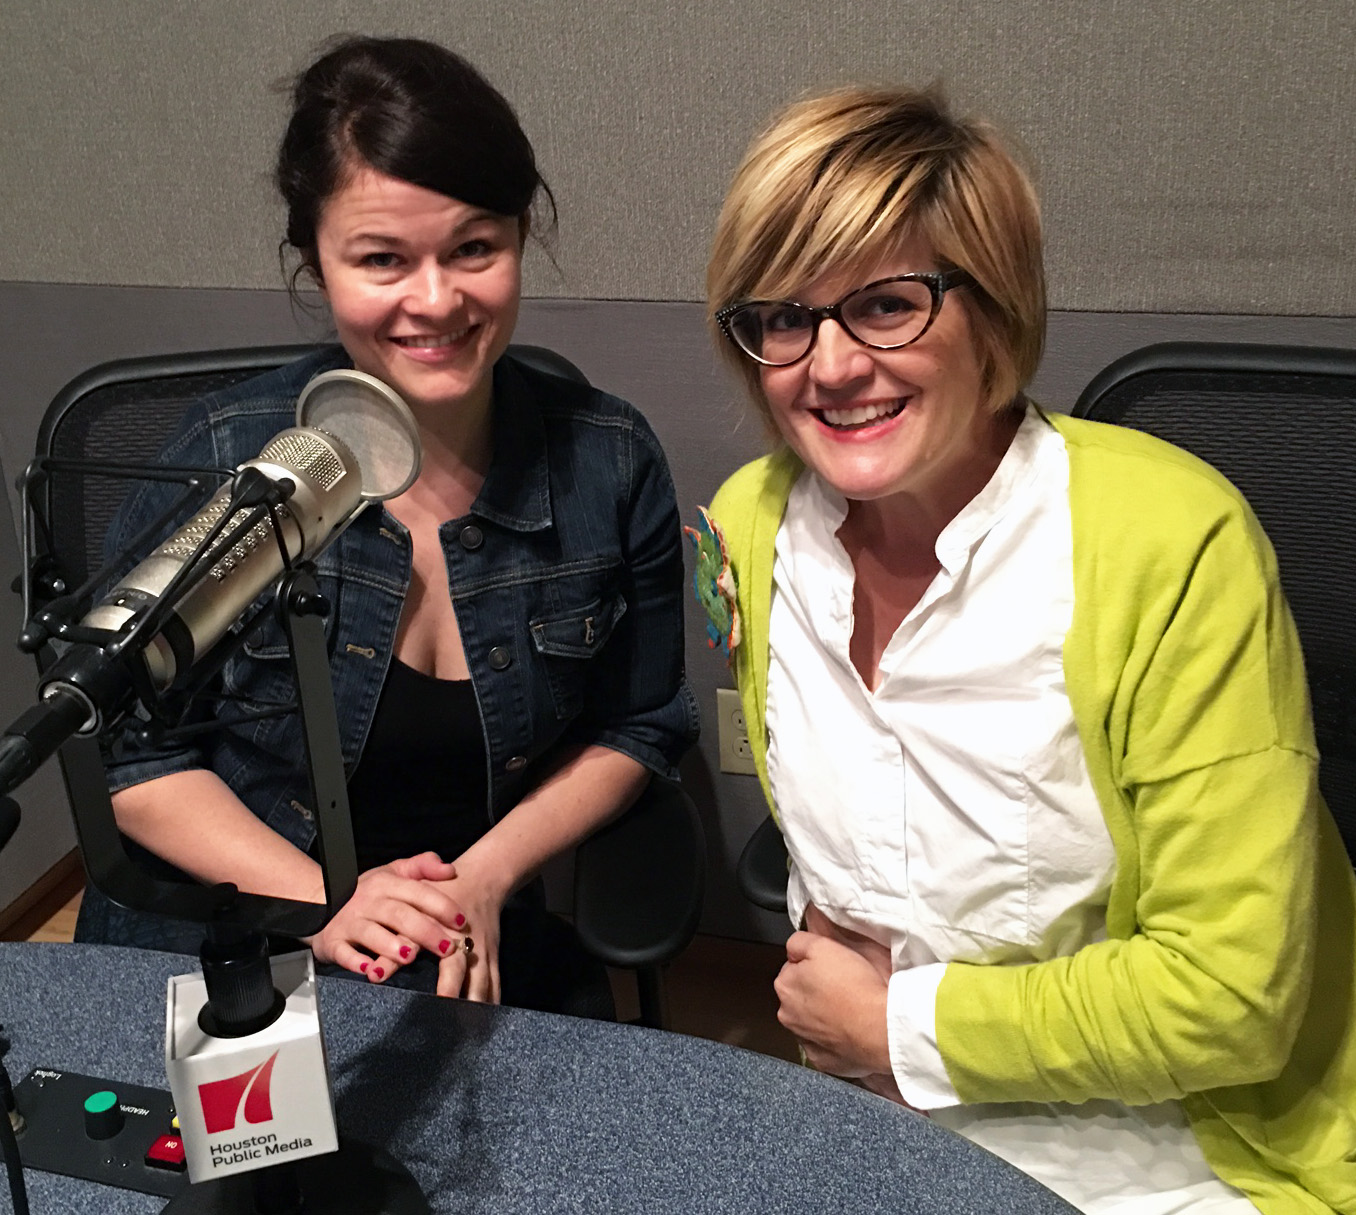 In studio picture of Bree Welch (l) and Julia Traber (2) from Classical Theatre Company's production of Shakespeare's Henry V